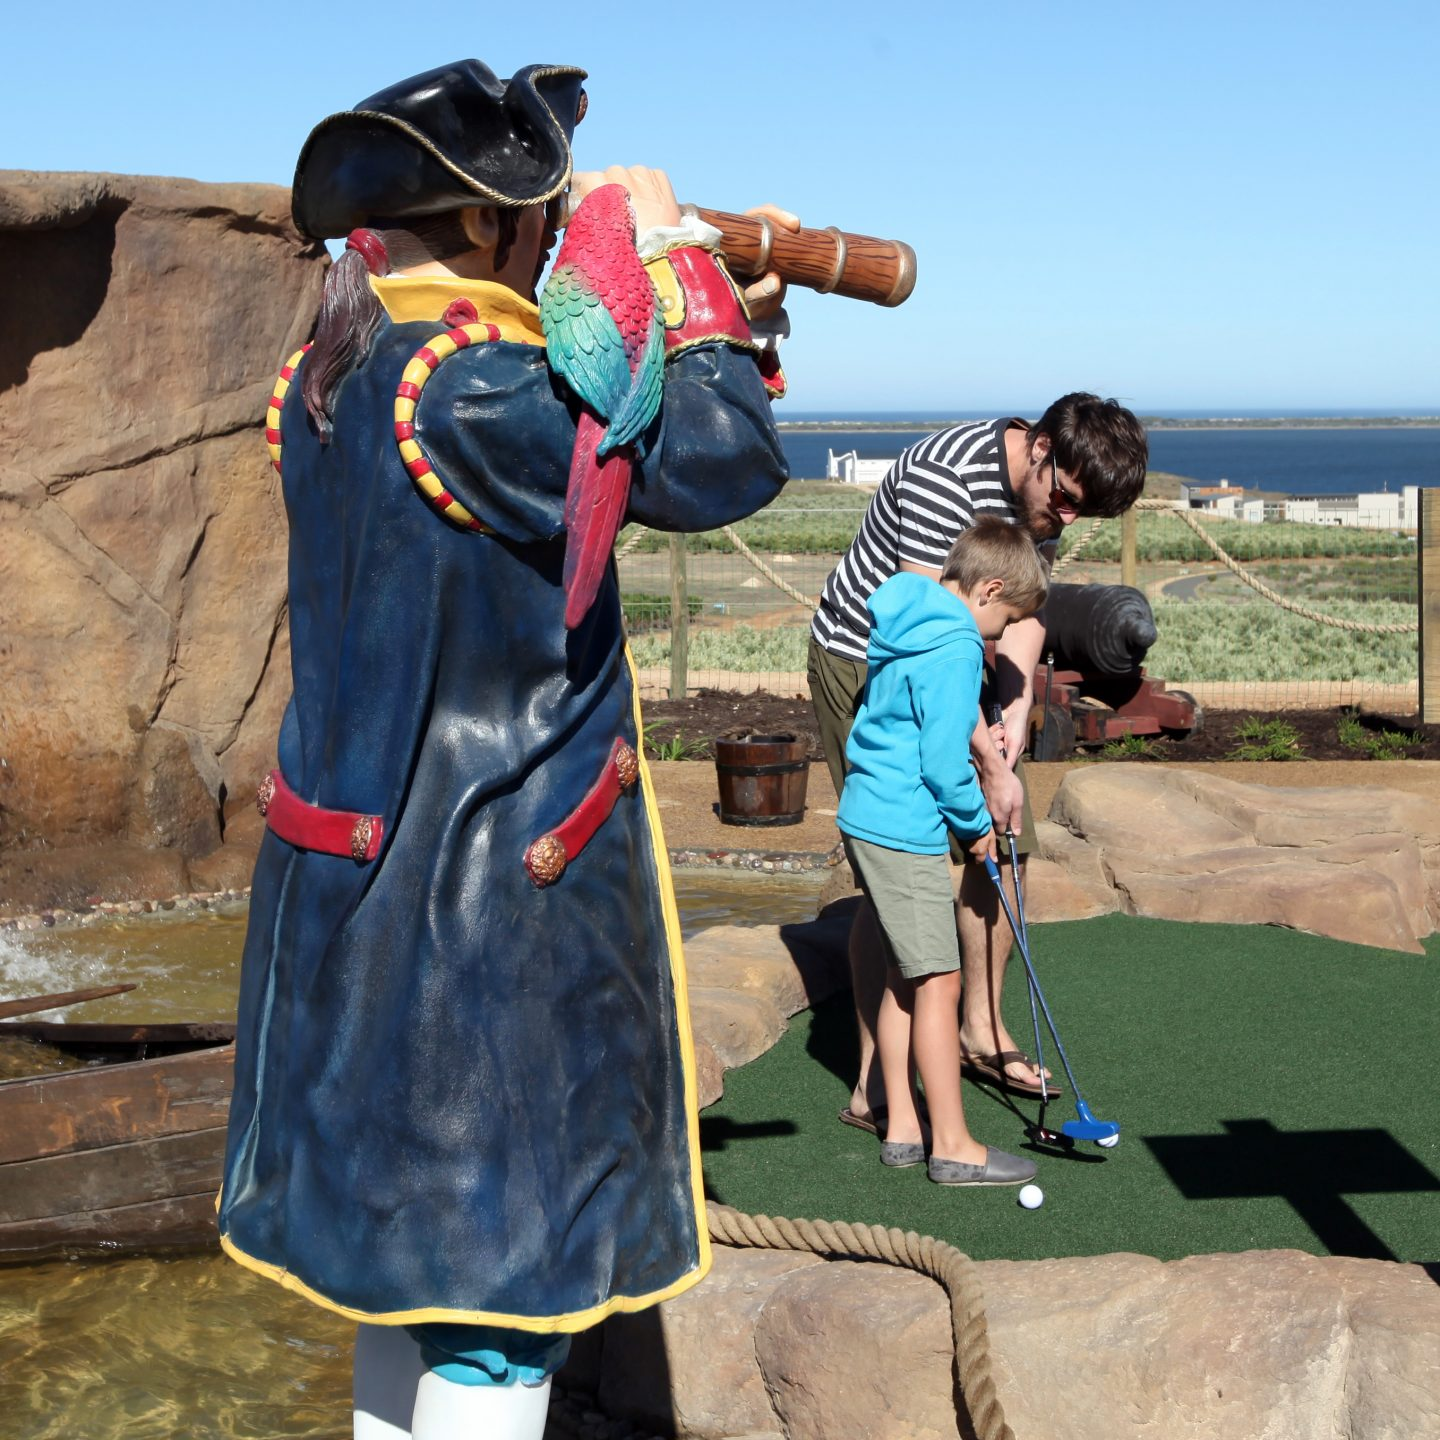 WIN a Family Day of FUN at Pirate Adventure Golf and Splash Pad @BenguelaCove